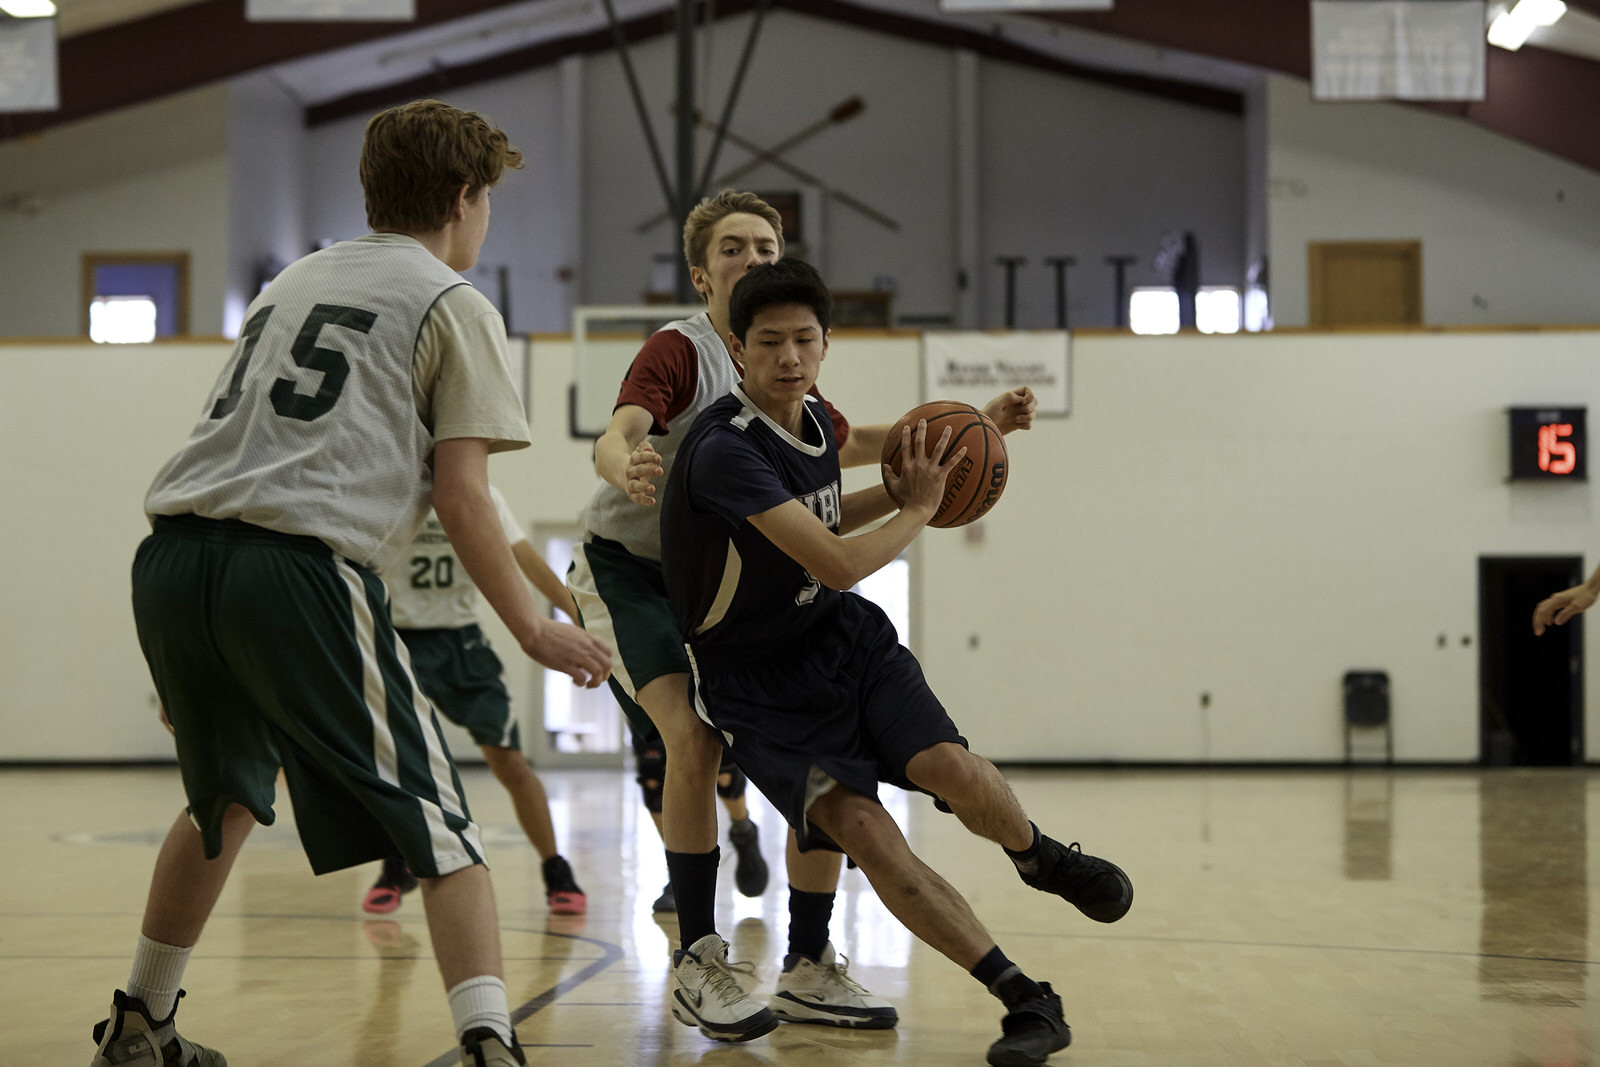 Dublin JV Boys Basketball vs High Mowing School - Jan 26 2019 - 0144.jpg